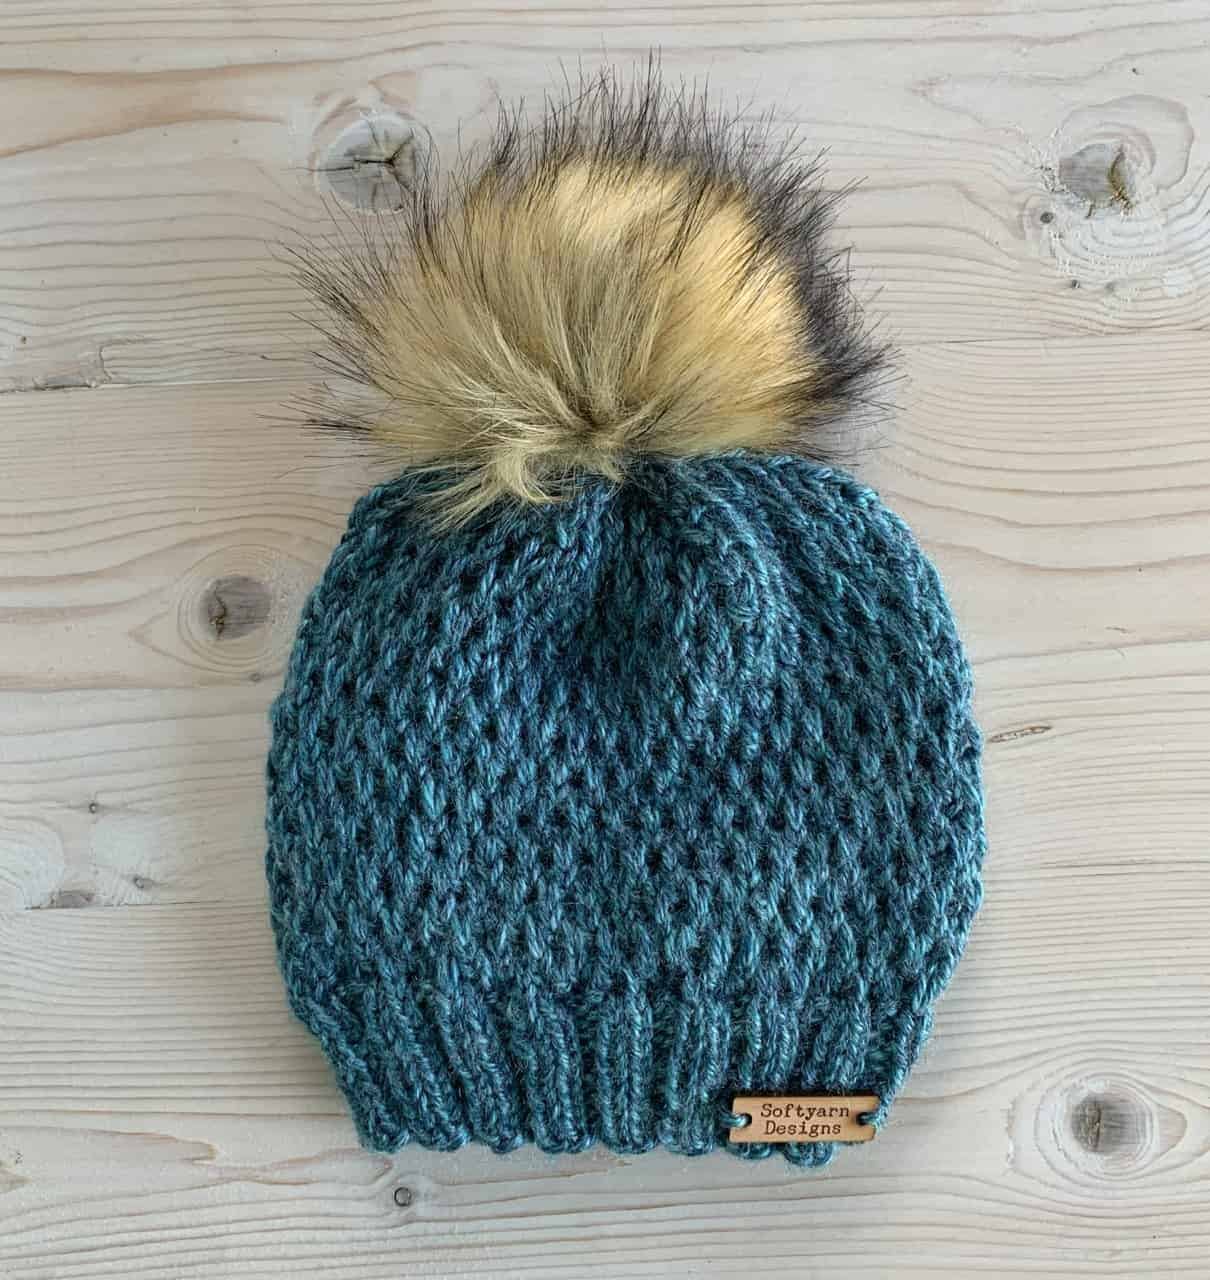 A teal textured hat.